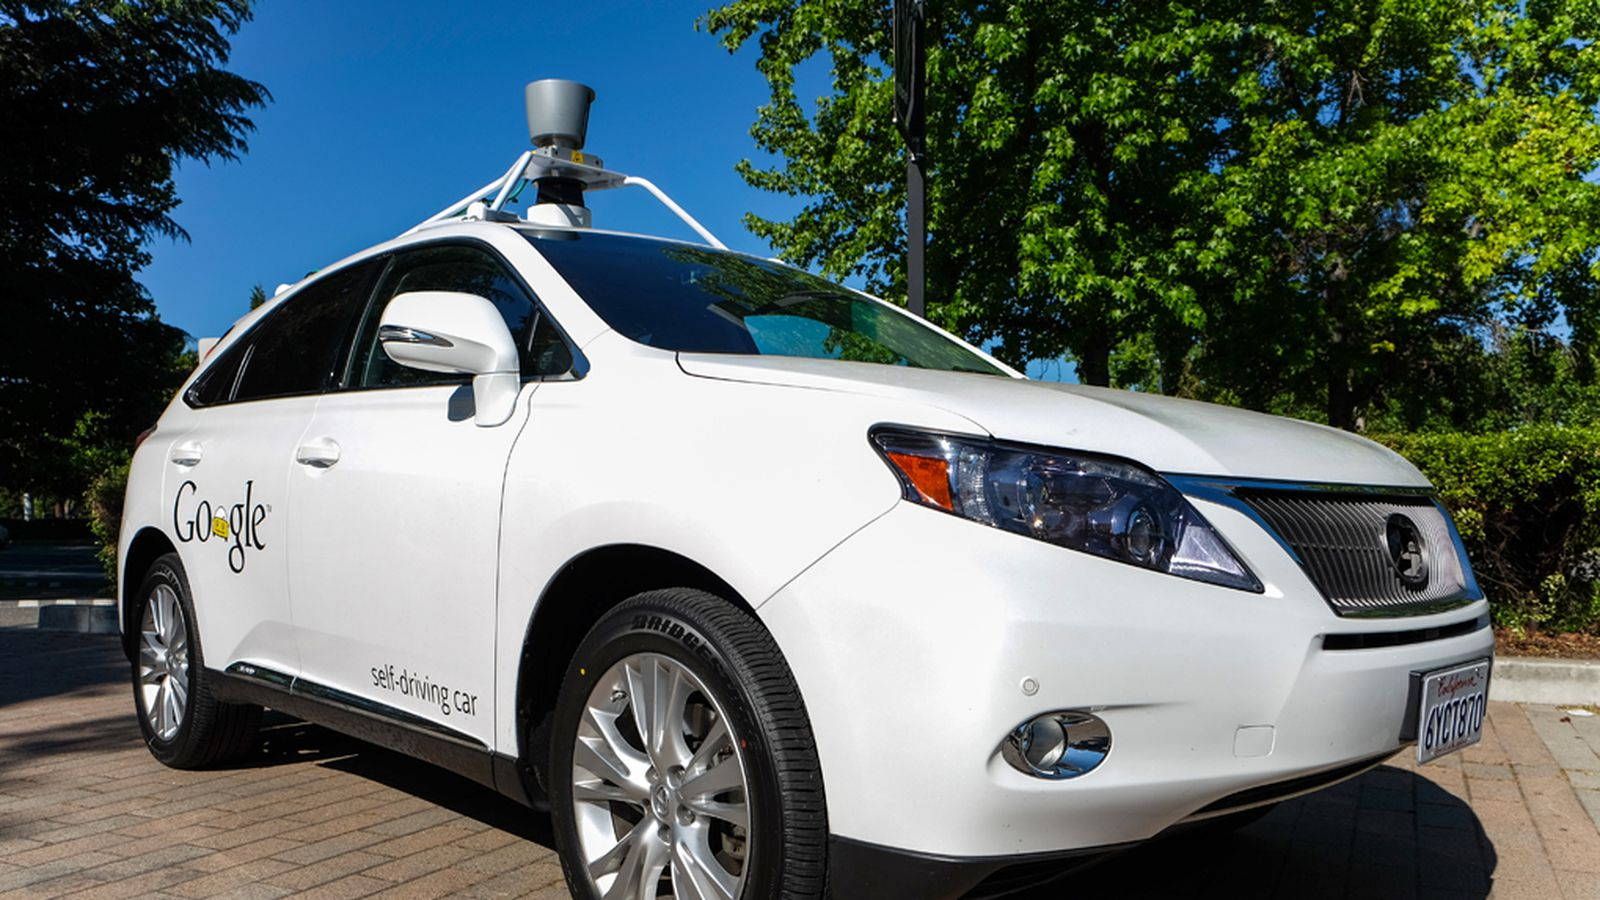 Drive Google Maps Car Job Google's Self-driving Cars Set